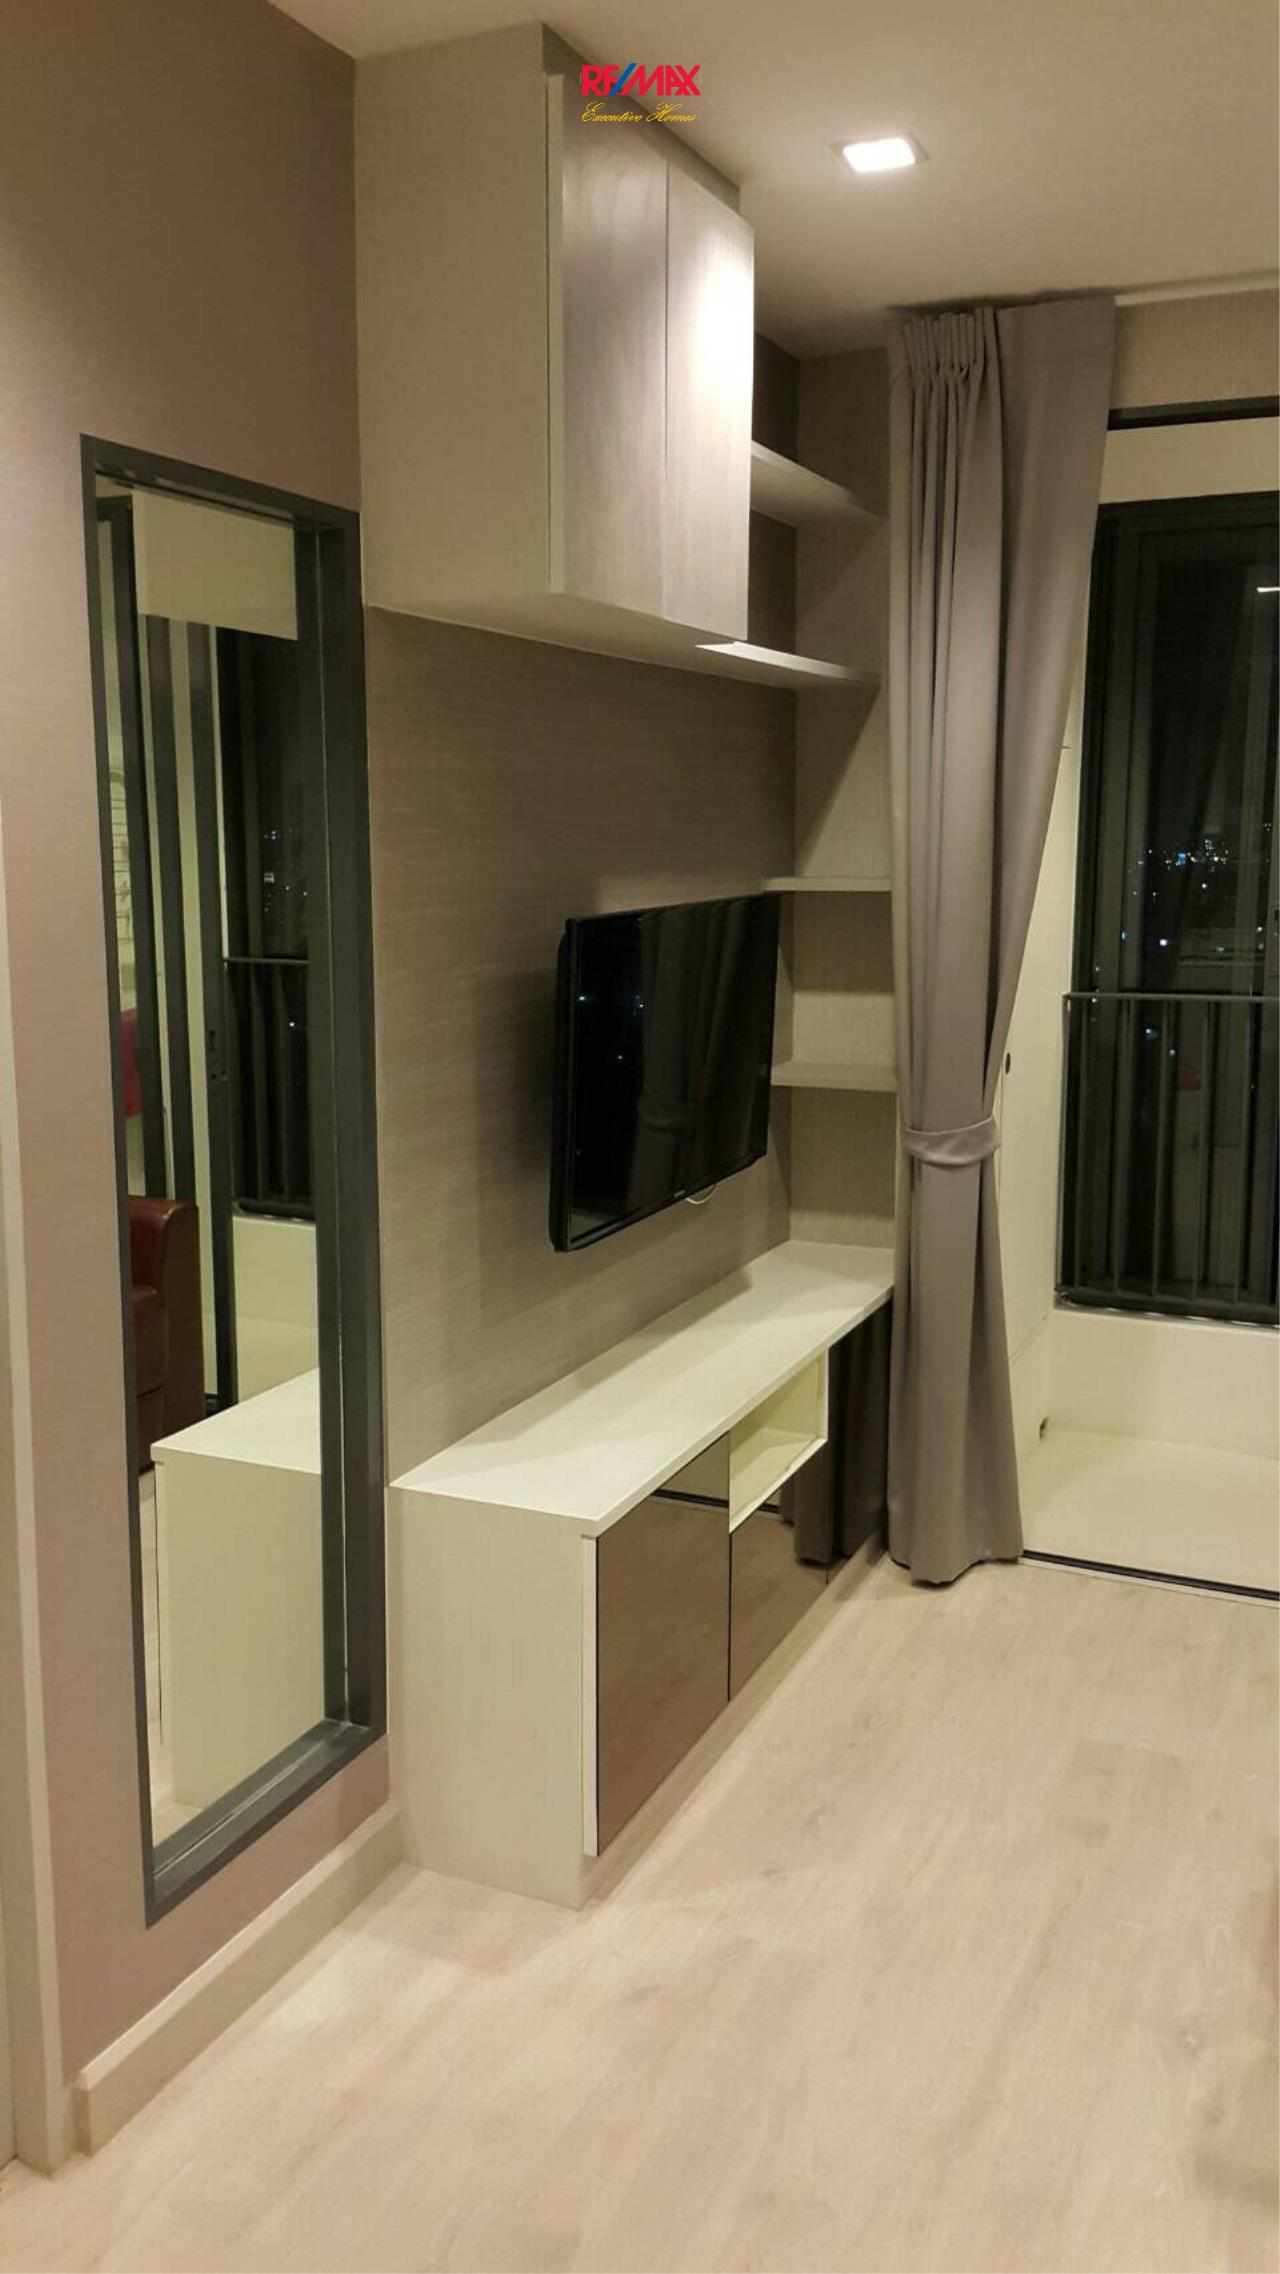 RE/MAX Executive Homes Agency's Nice 1 Bedroom for Rent Ideo Mobi Sathorn 4